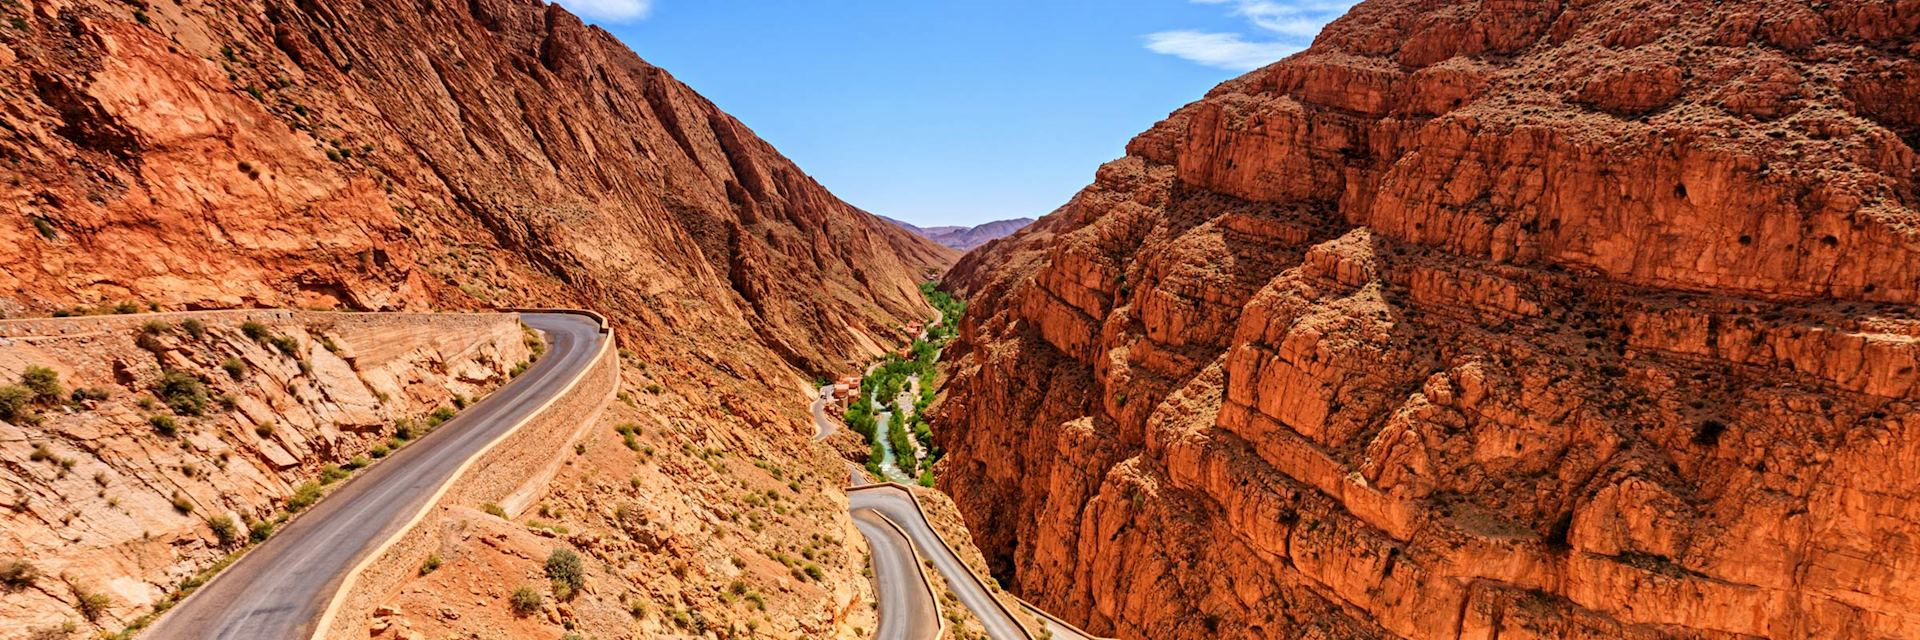 Road in the Dades Valley